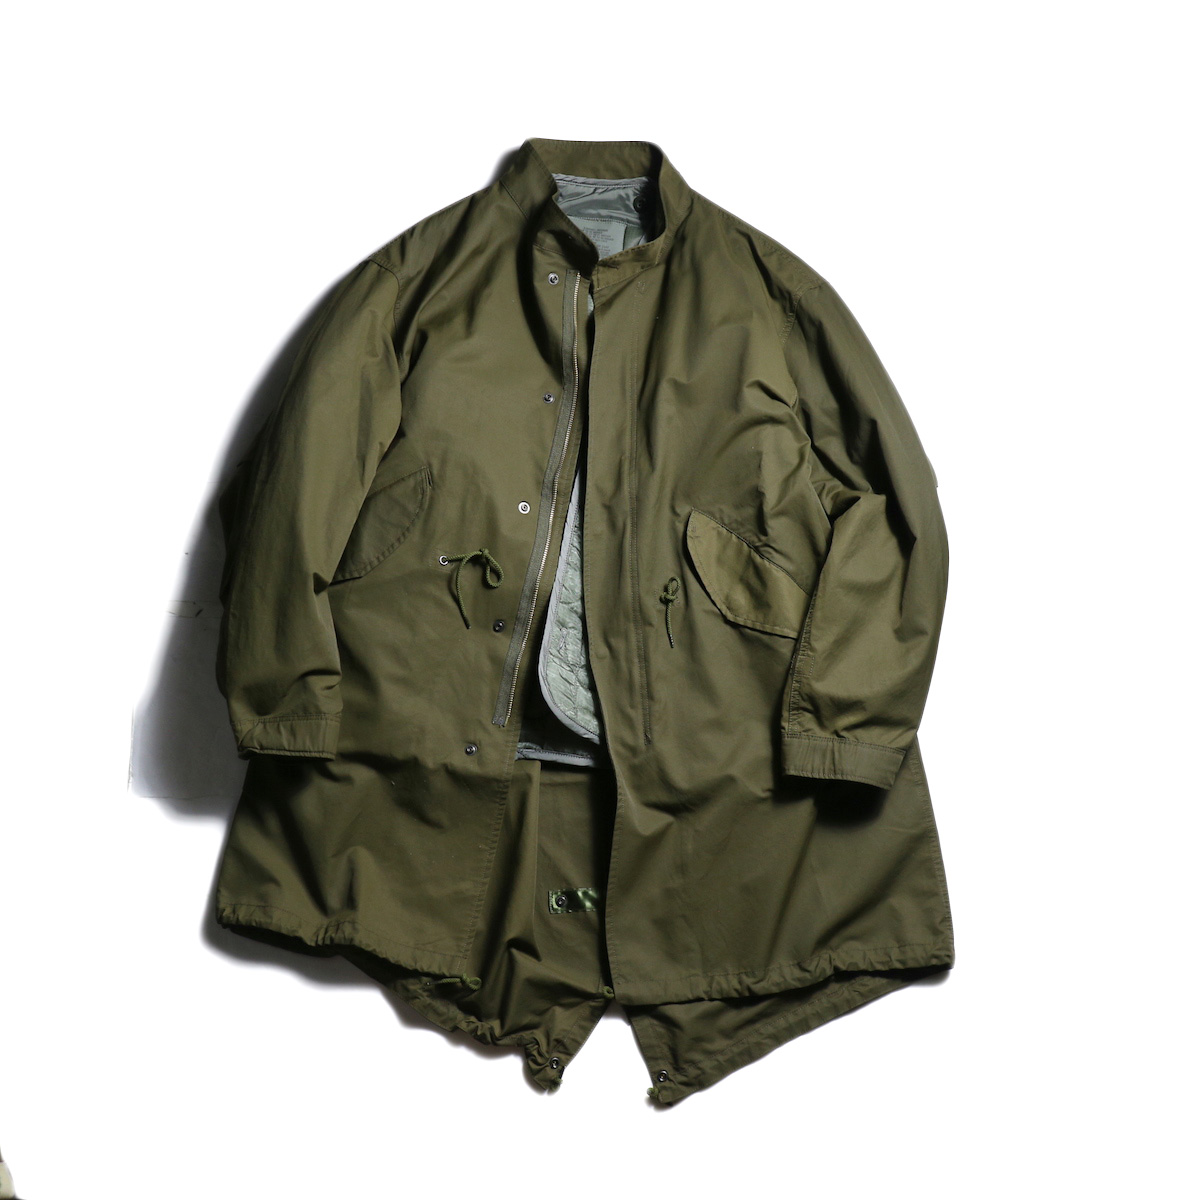 sunny sports / M65 fishtail parka (Olive)